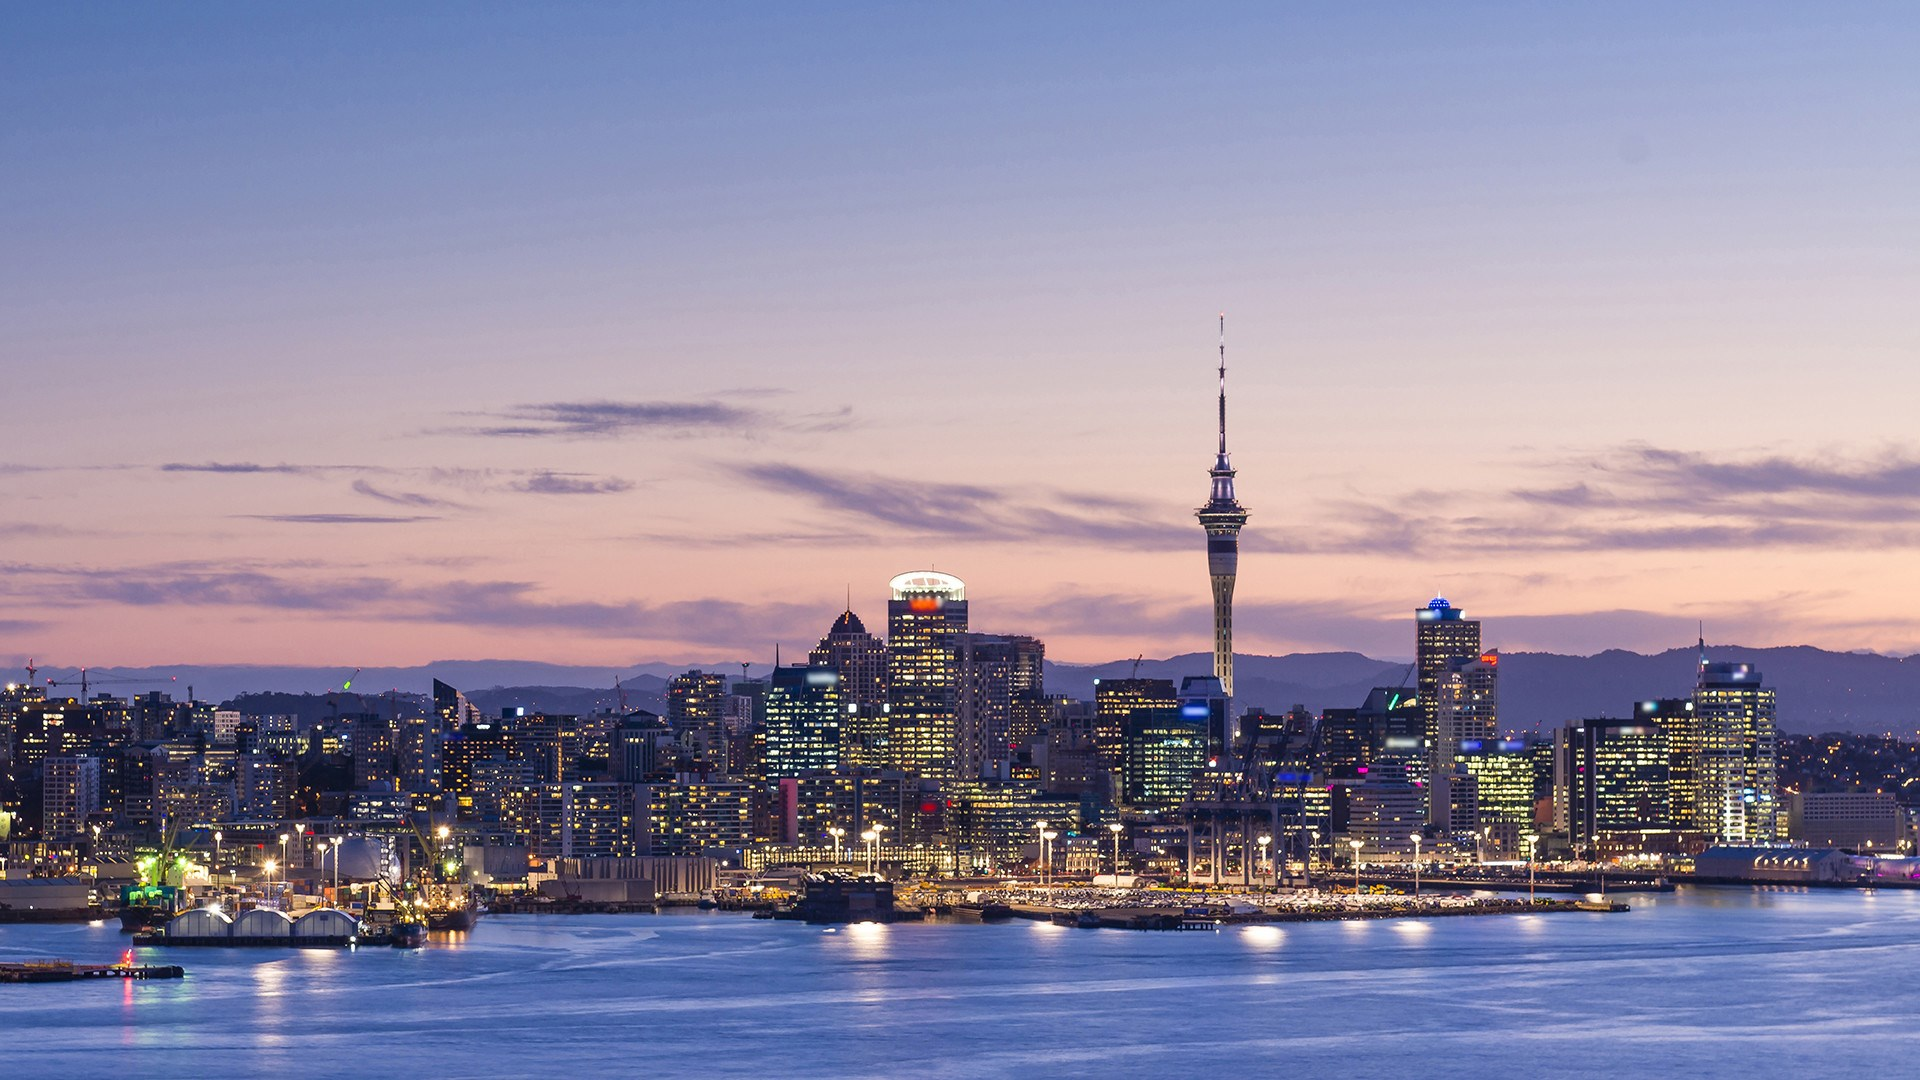 View of Auckland city from Waitemata Harbour